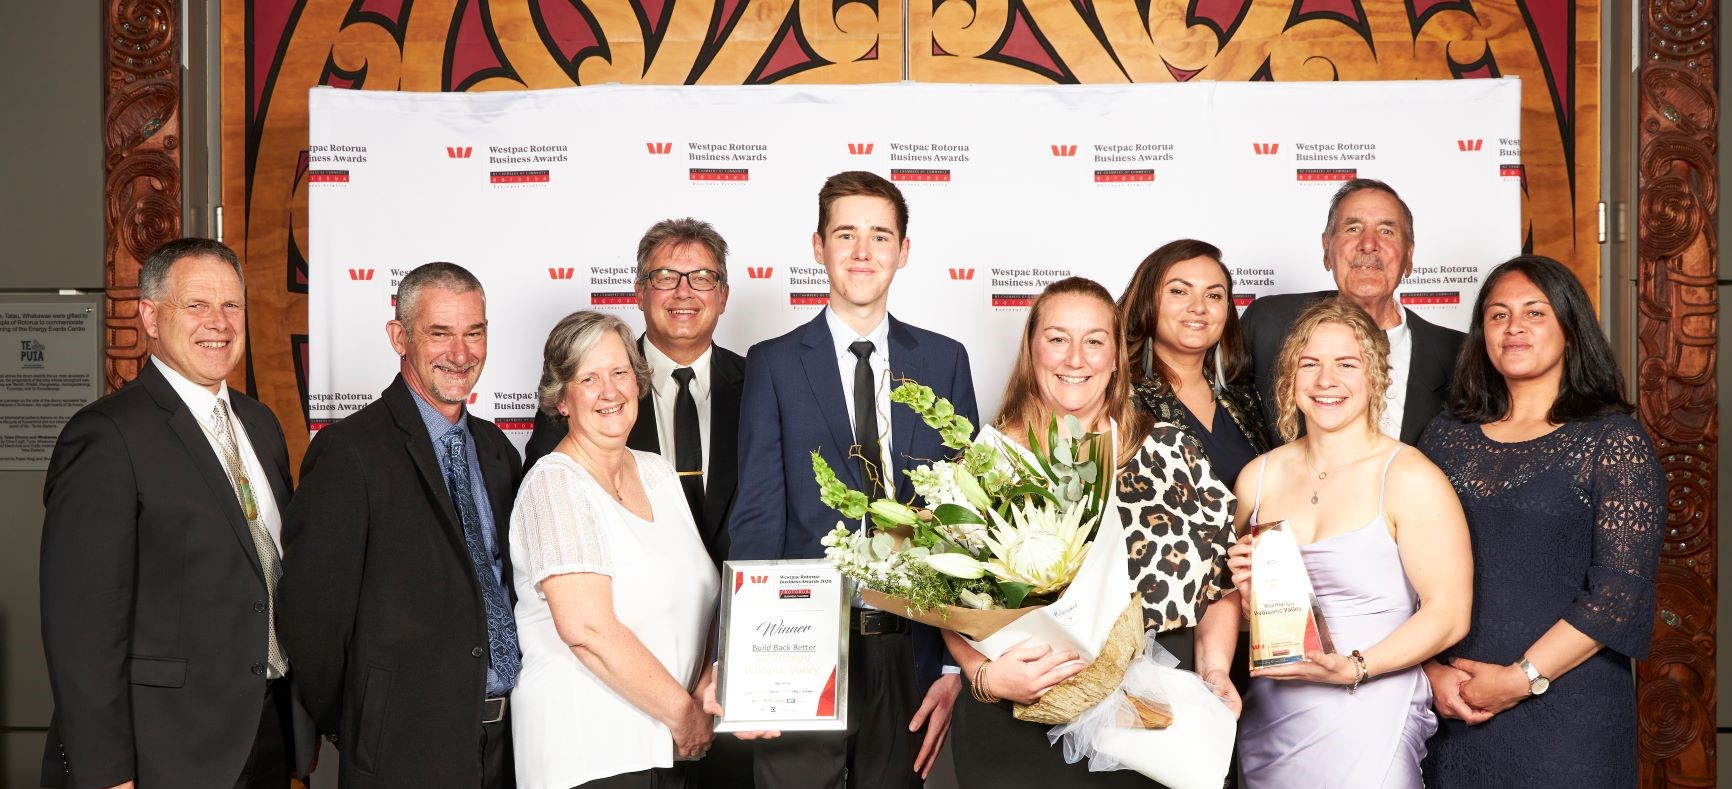 Quick thinking leads to business award